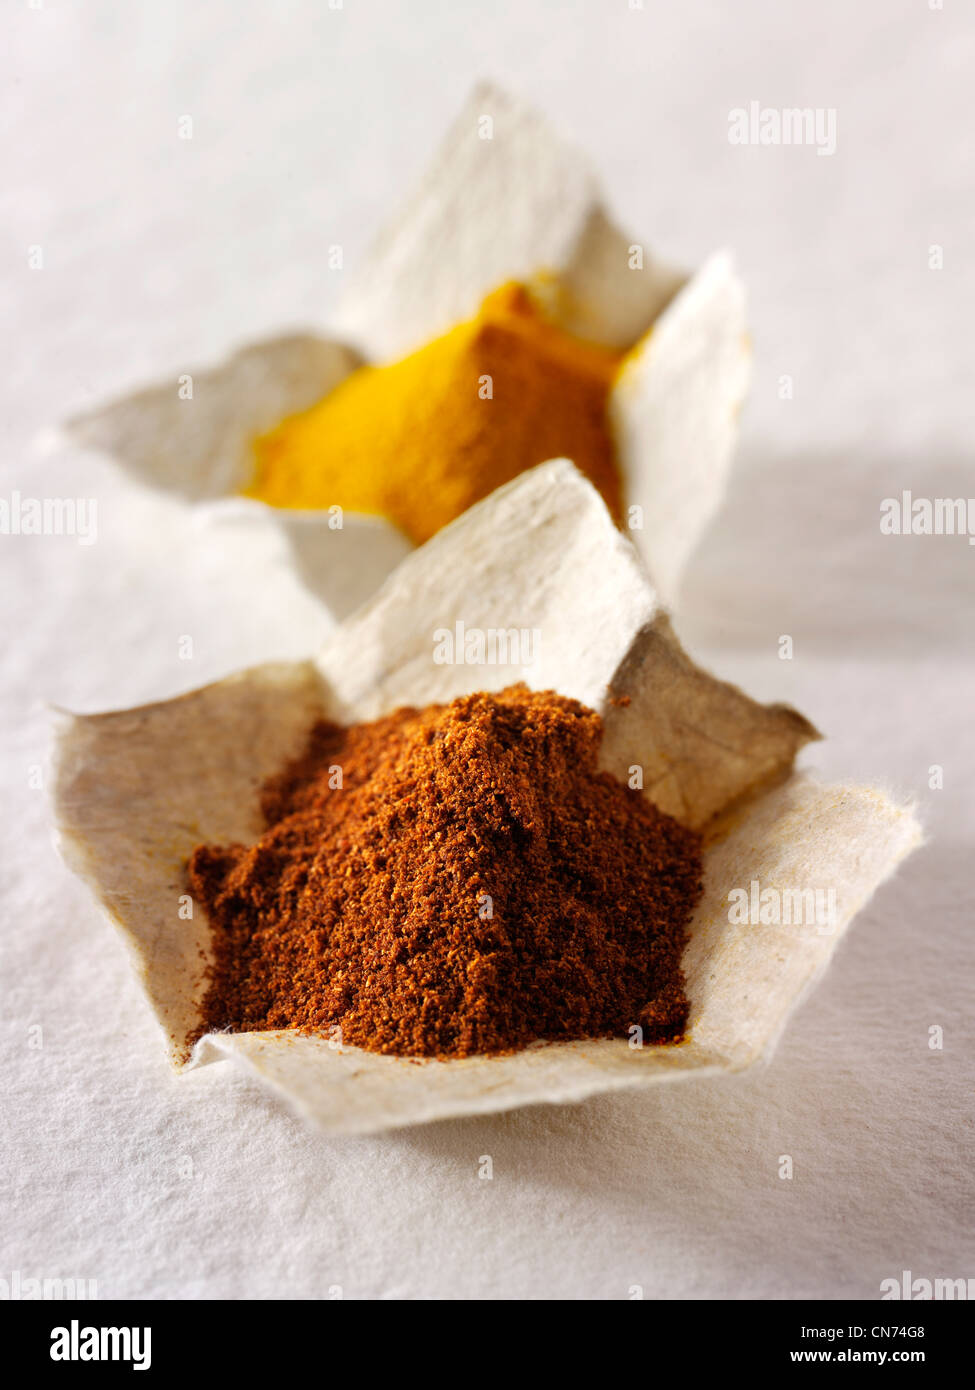 Ground chilli powder spice & ground turmeric composed arrangement - Stock Image